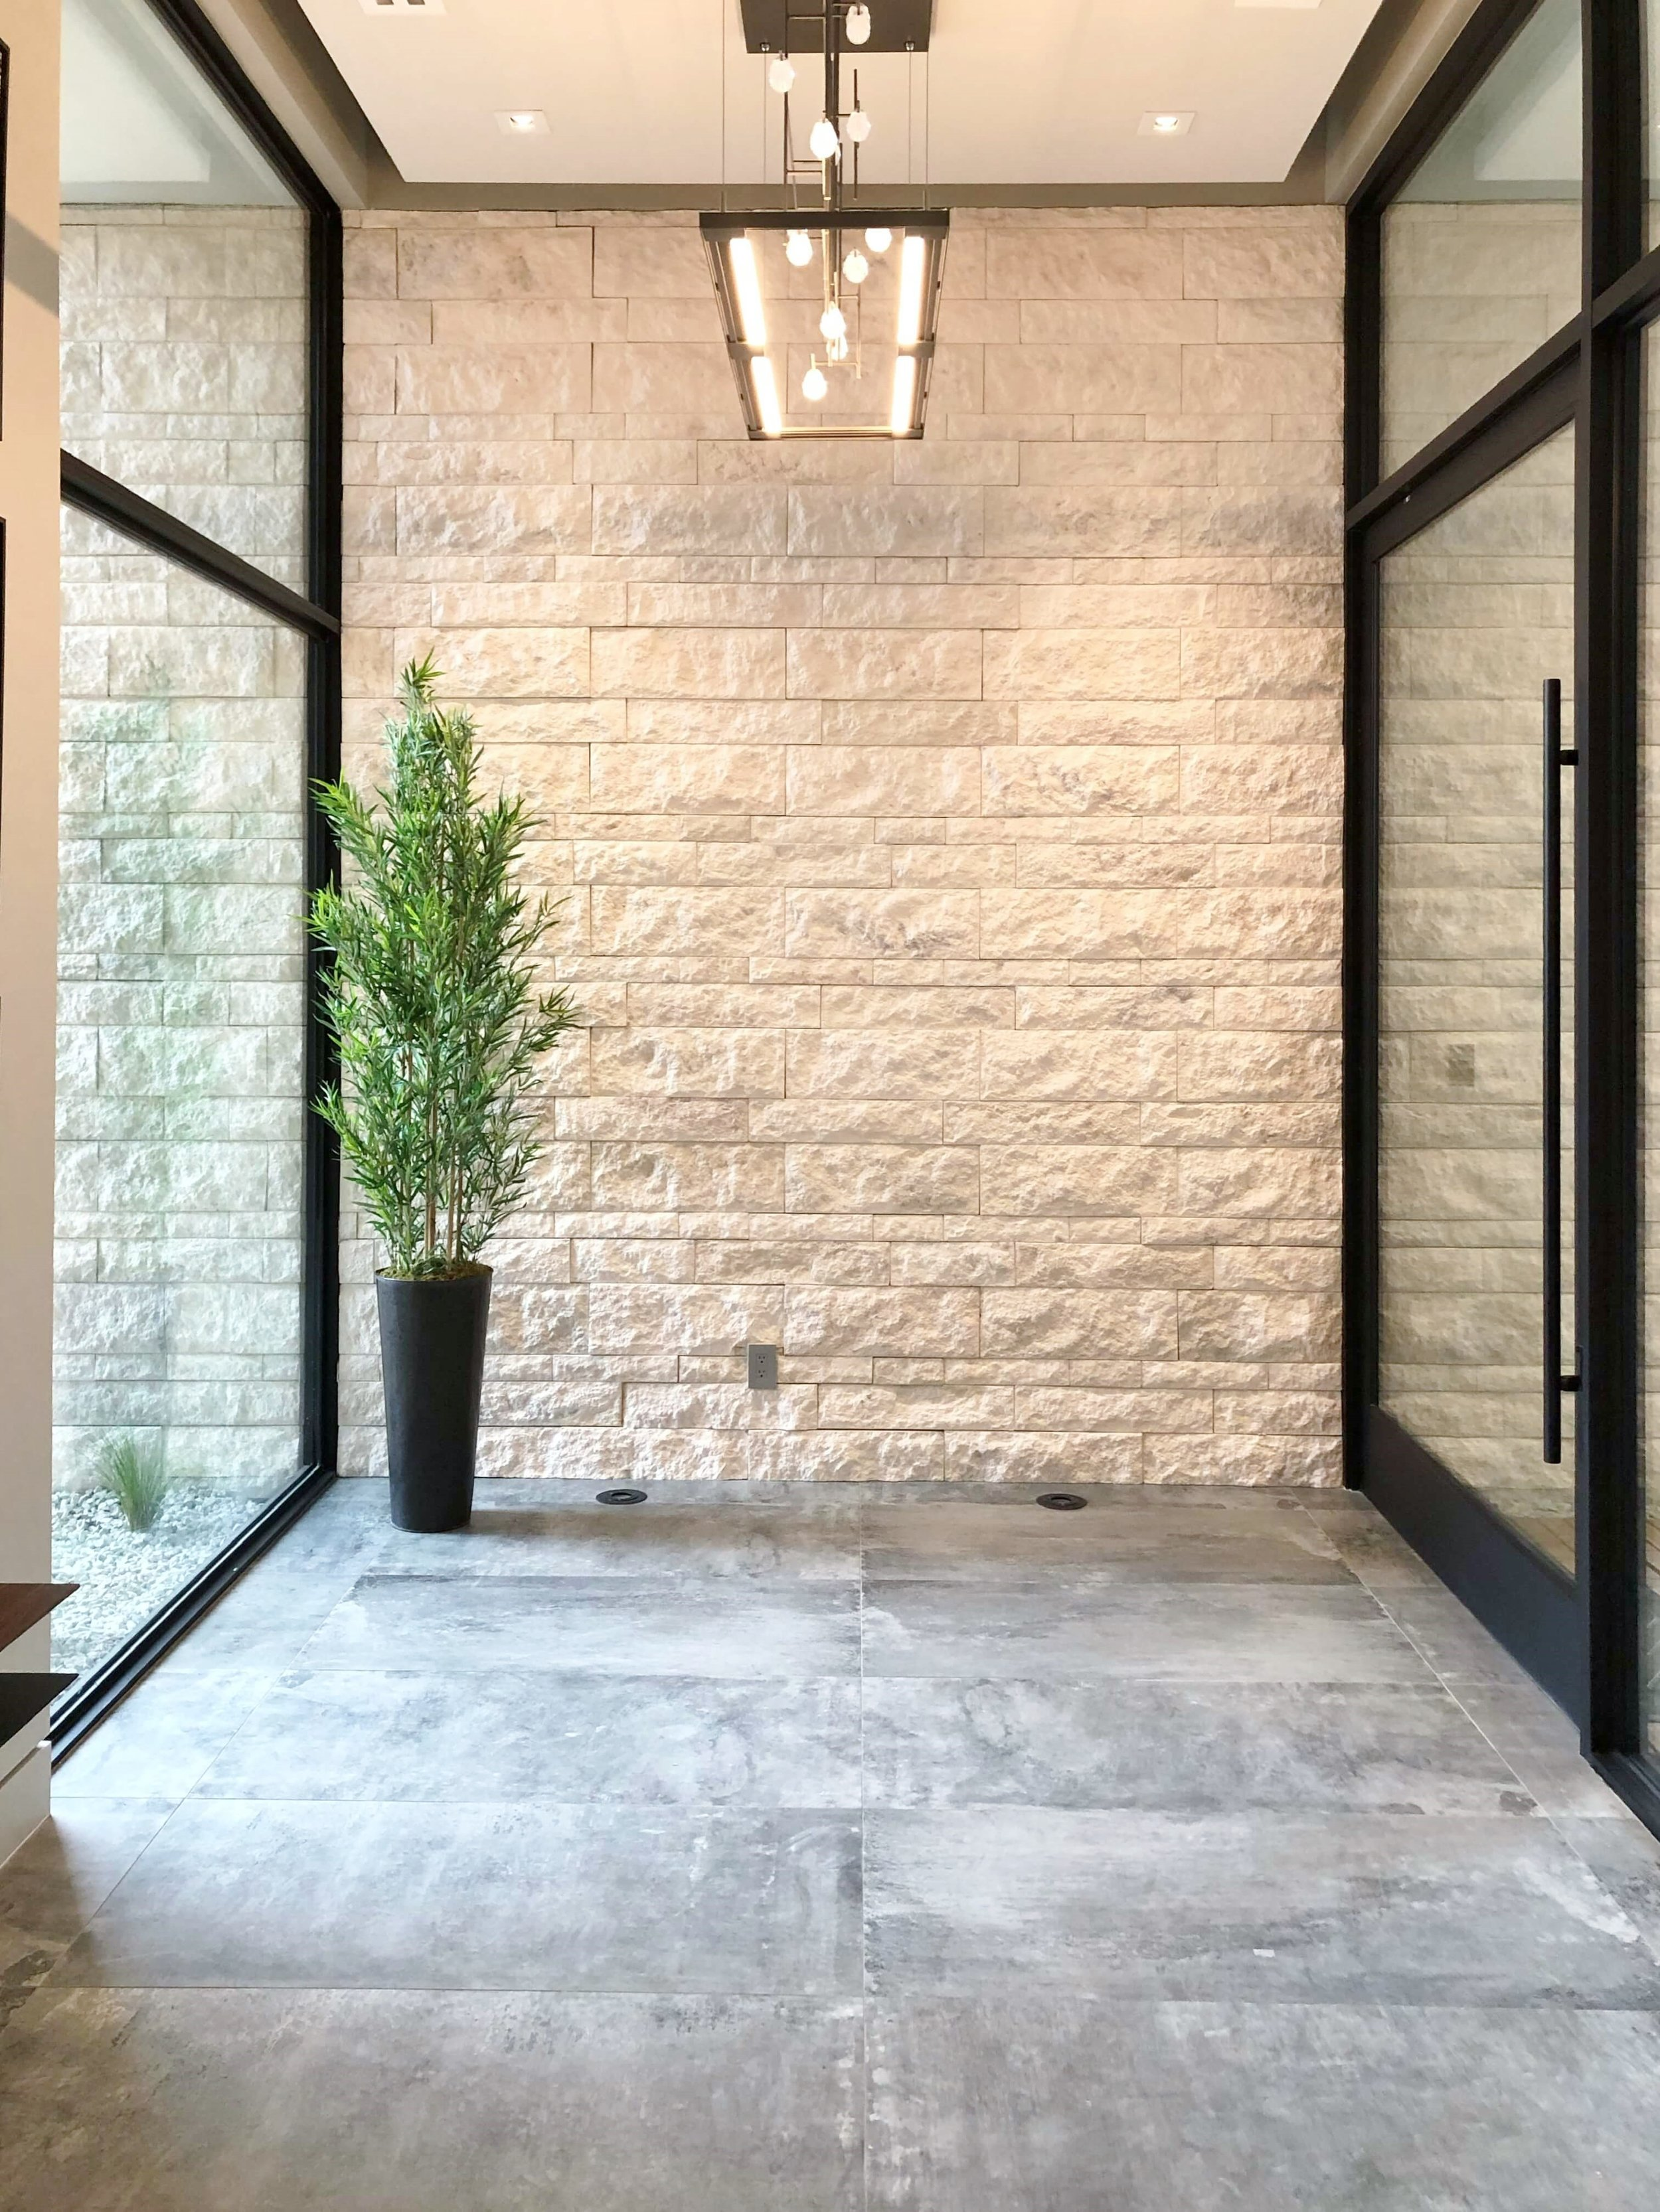 The wide front door opens to a view of the patio beyond. Textural, rugged materials combined with large glass walls create interest in this home. The New American Remodel 2019 #hometour #foyer #contemporaryhome